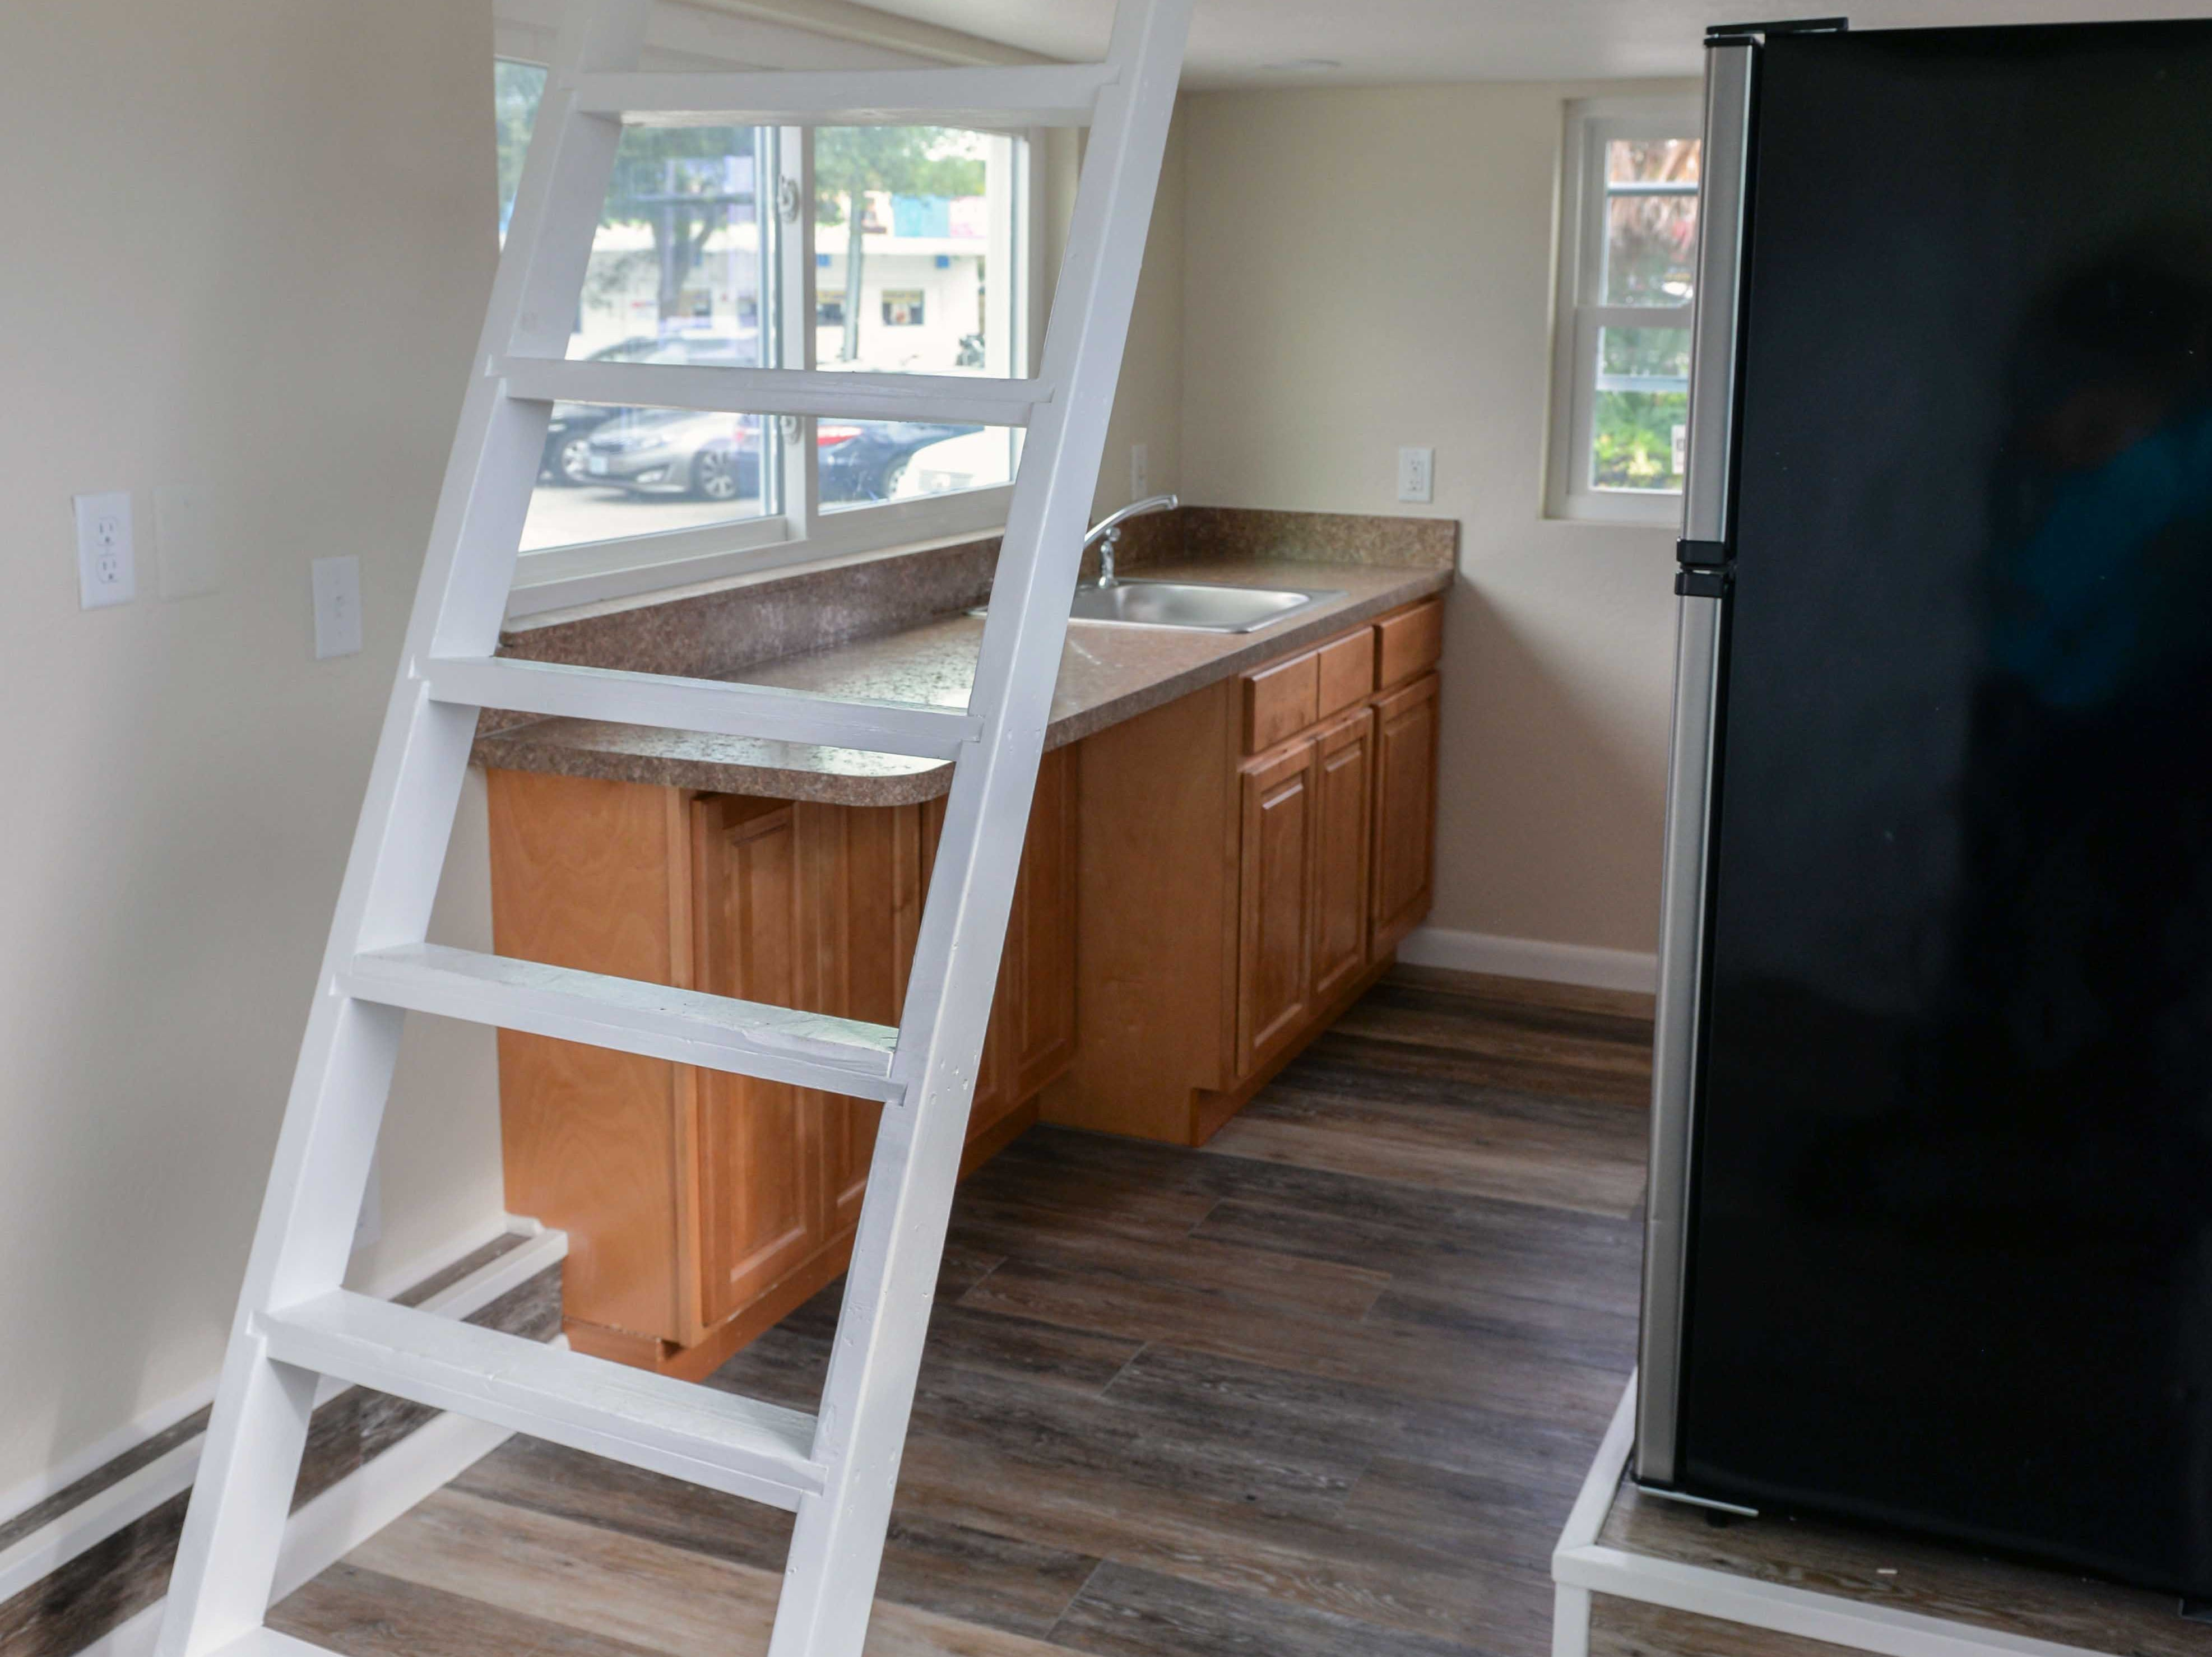 The Diamond Lil' Tiny Home features a kitchen with full-size appliances, space and connections for stackable washer/dryer, living area and two lofts, and bathroom with toilet, shower, sink, closet.